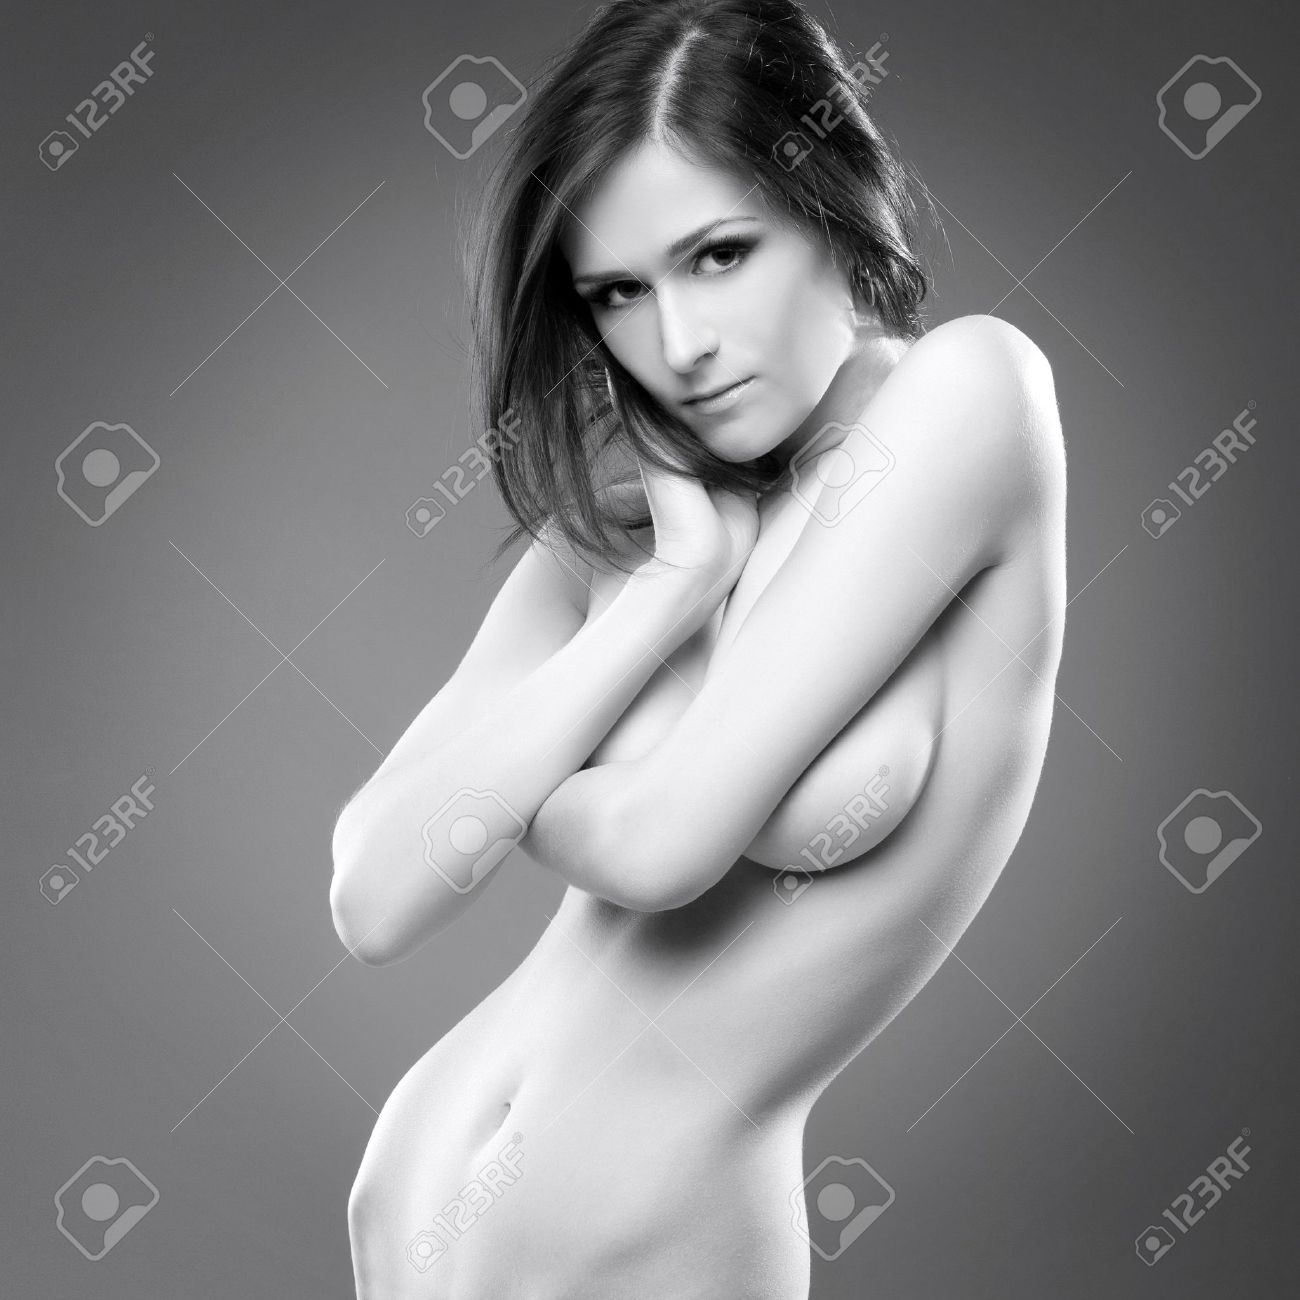 Black and white nude females